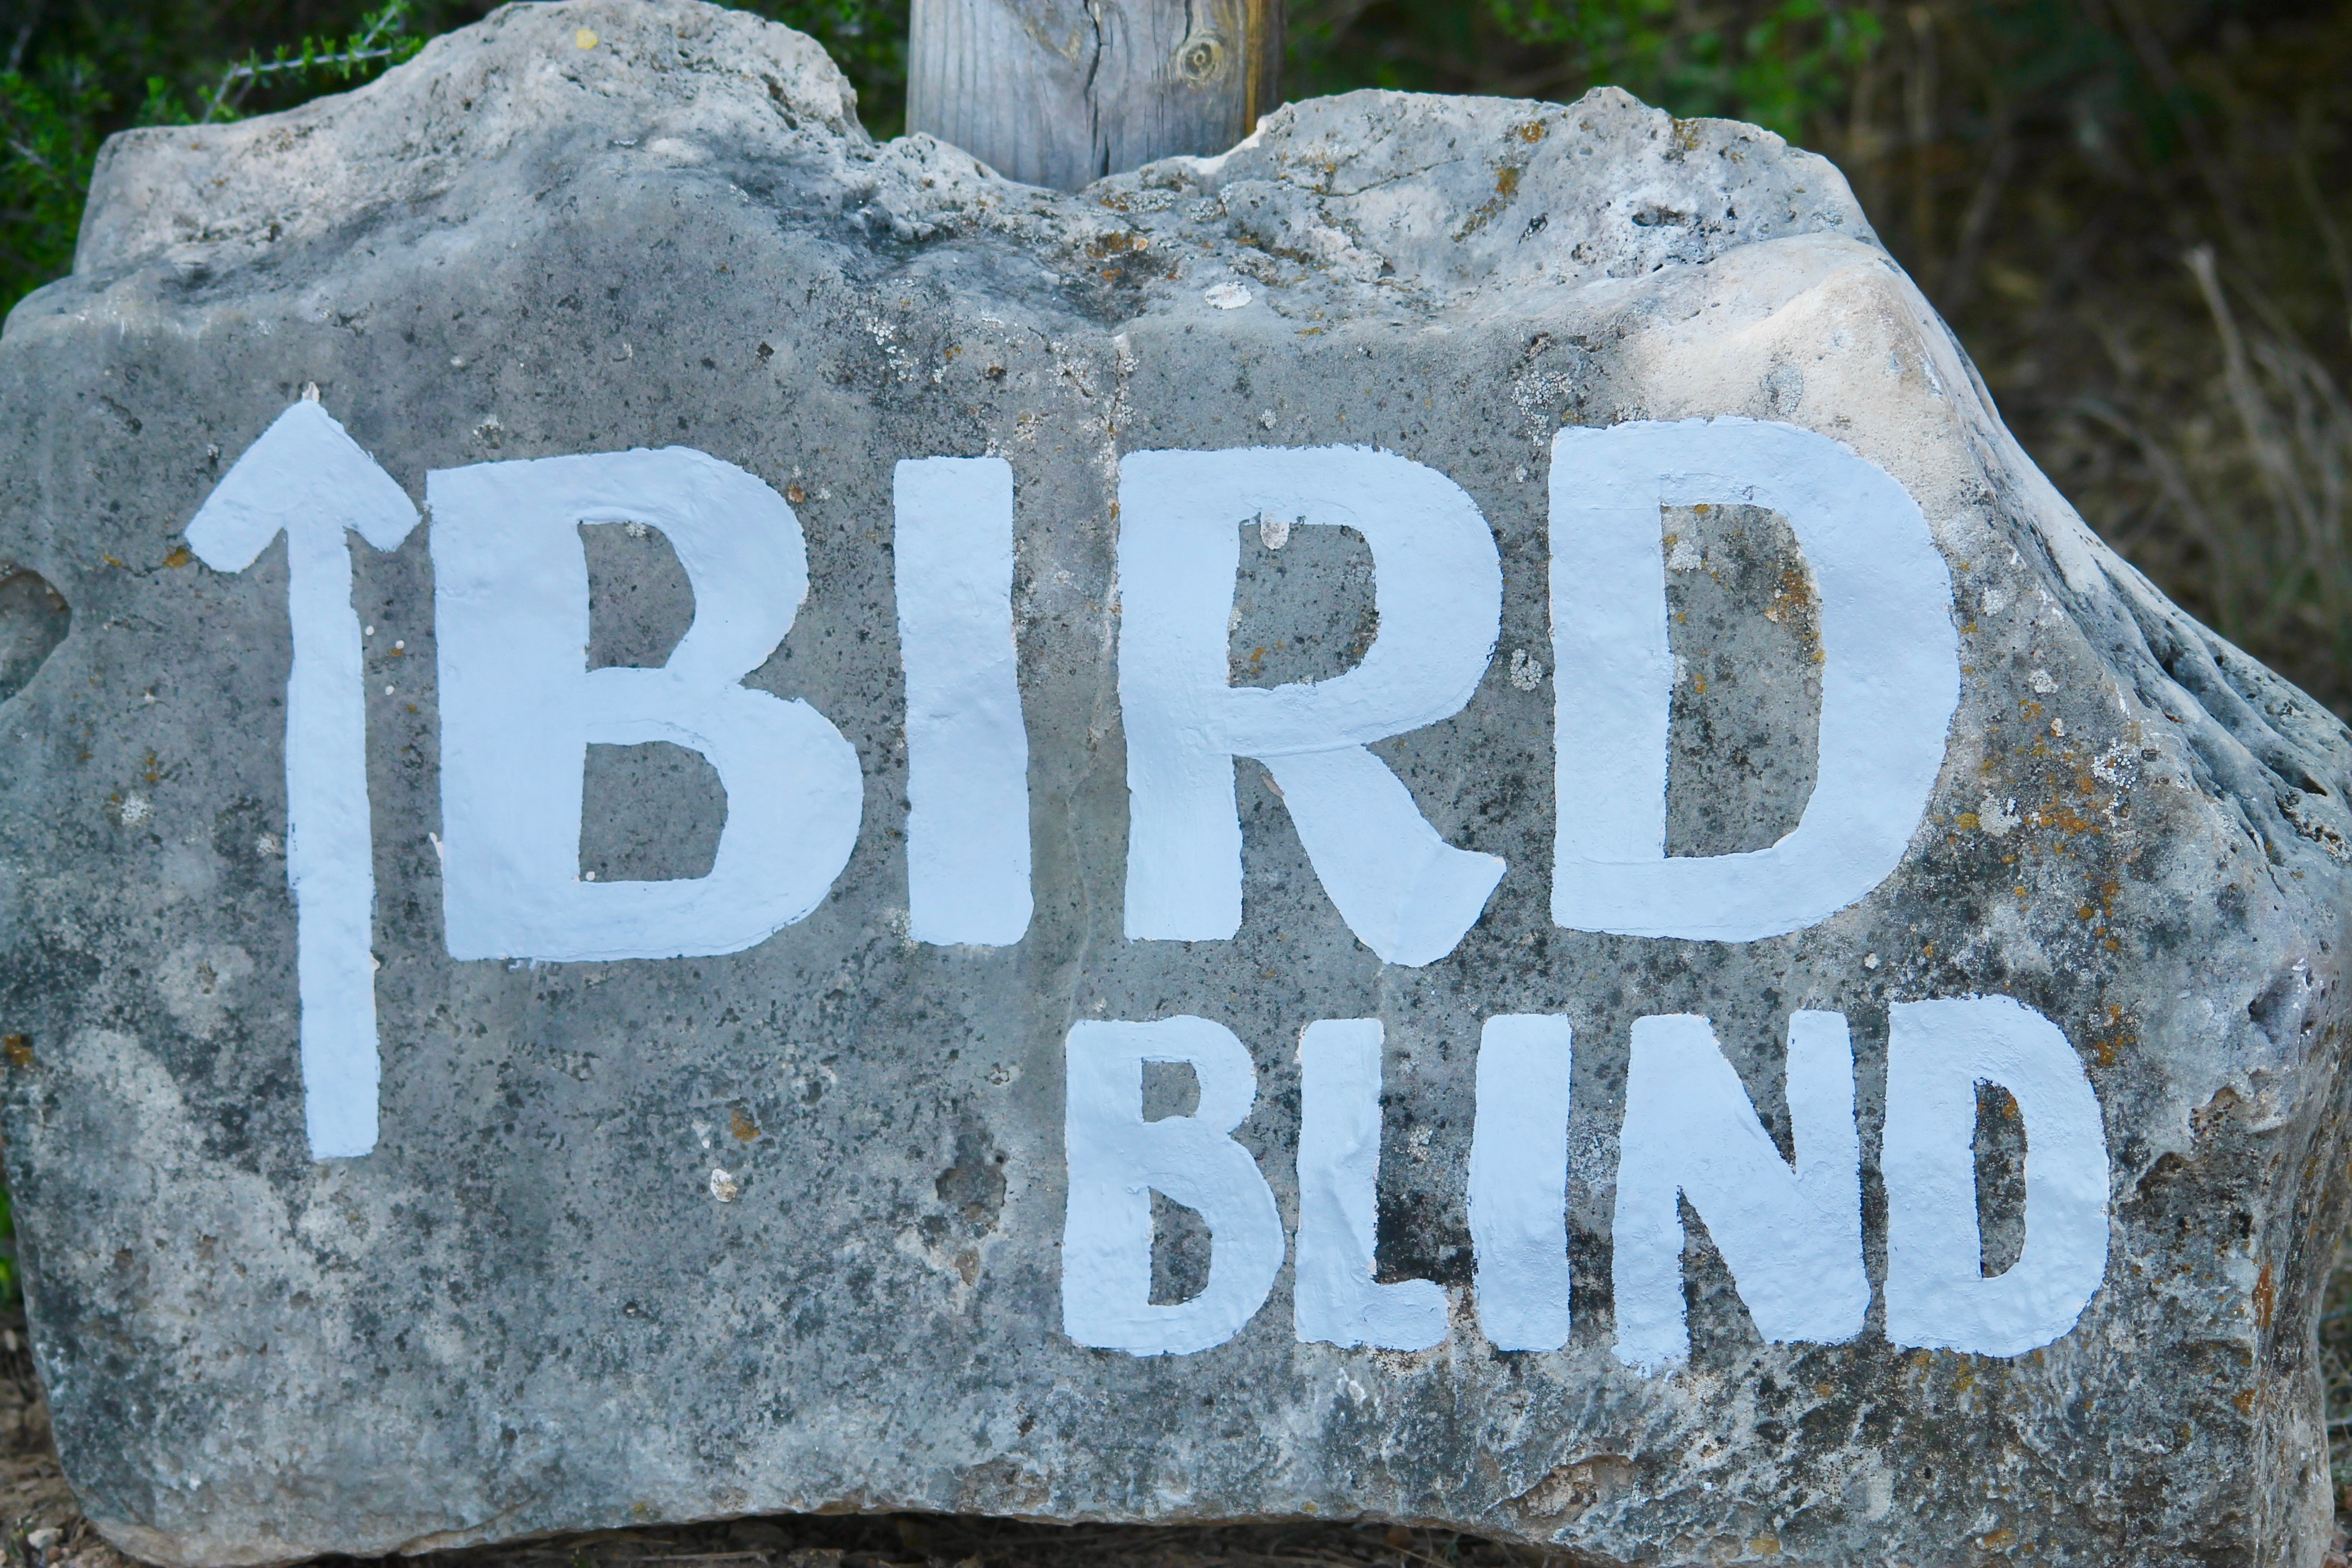 Bird Blinds Ahead